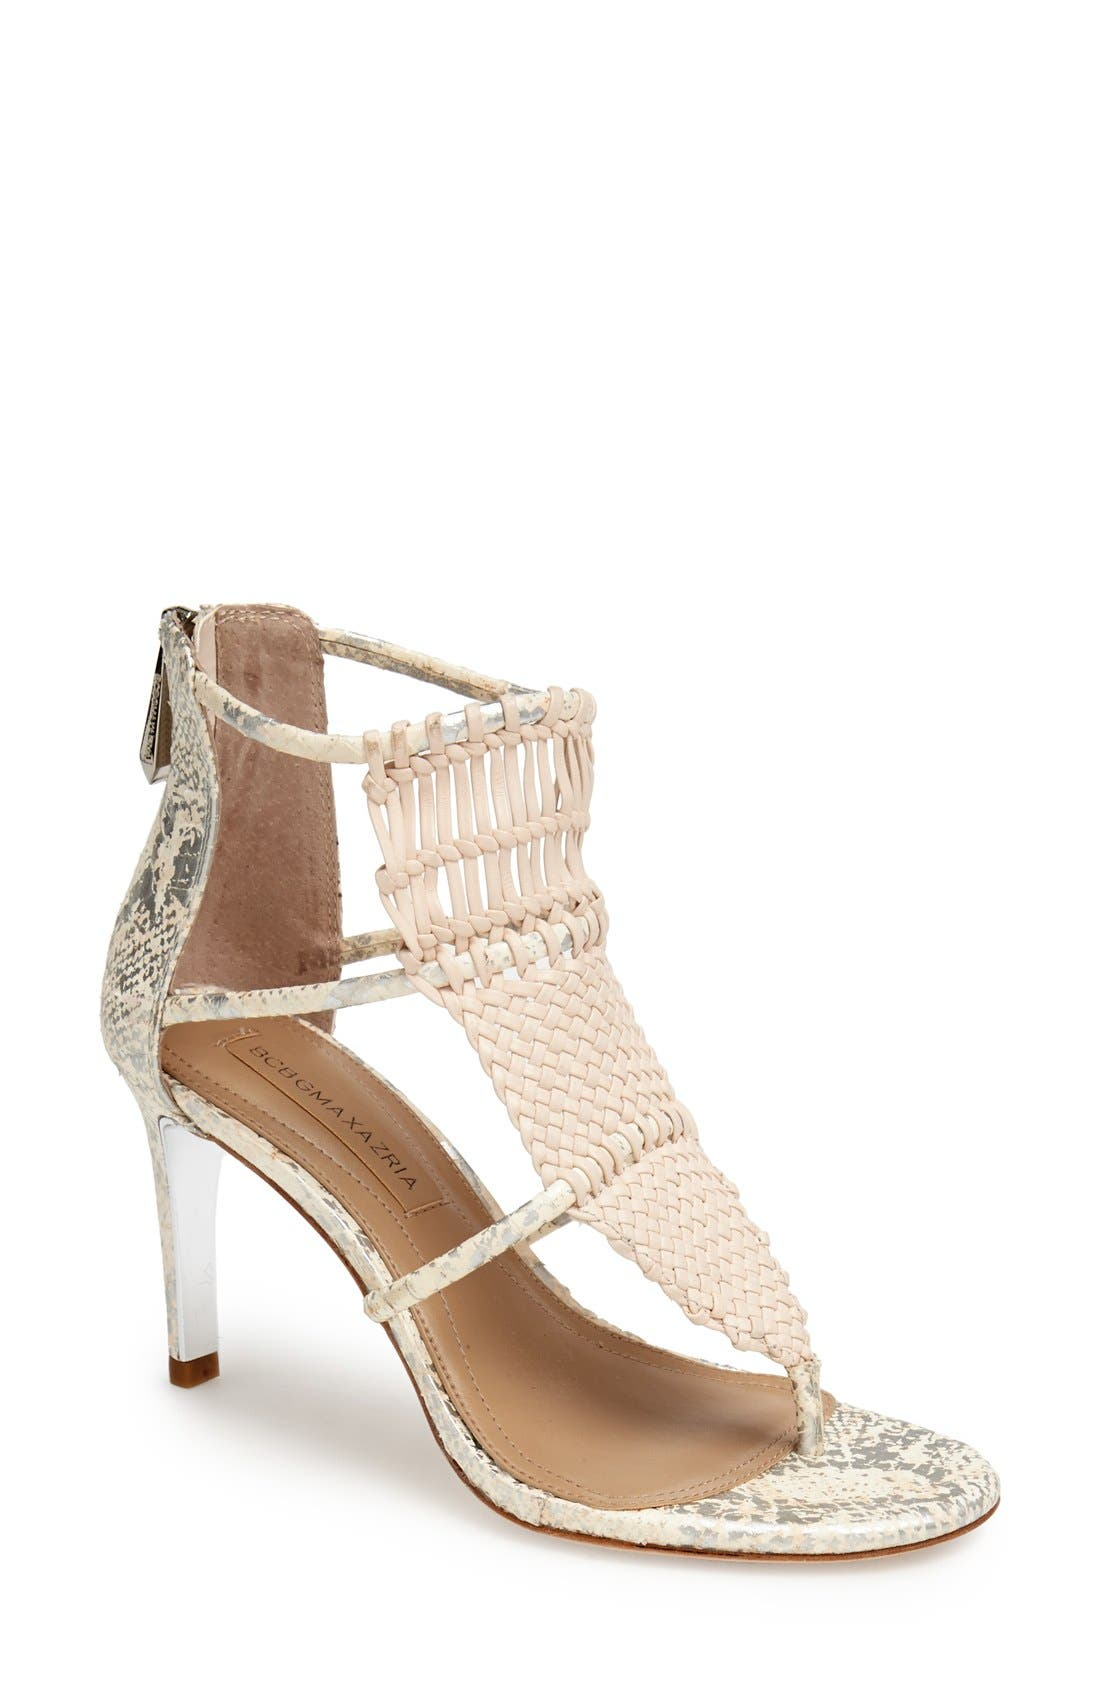 Alternate Image 1 Selected - BCBGMAXAZRIA Caged Leather Sandal